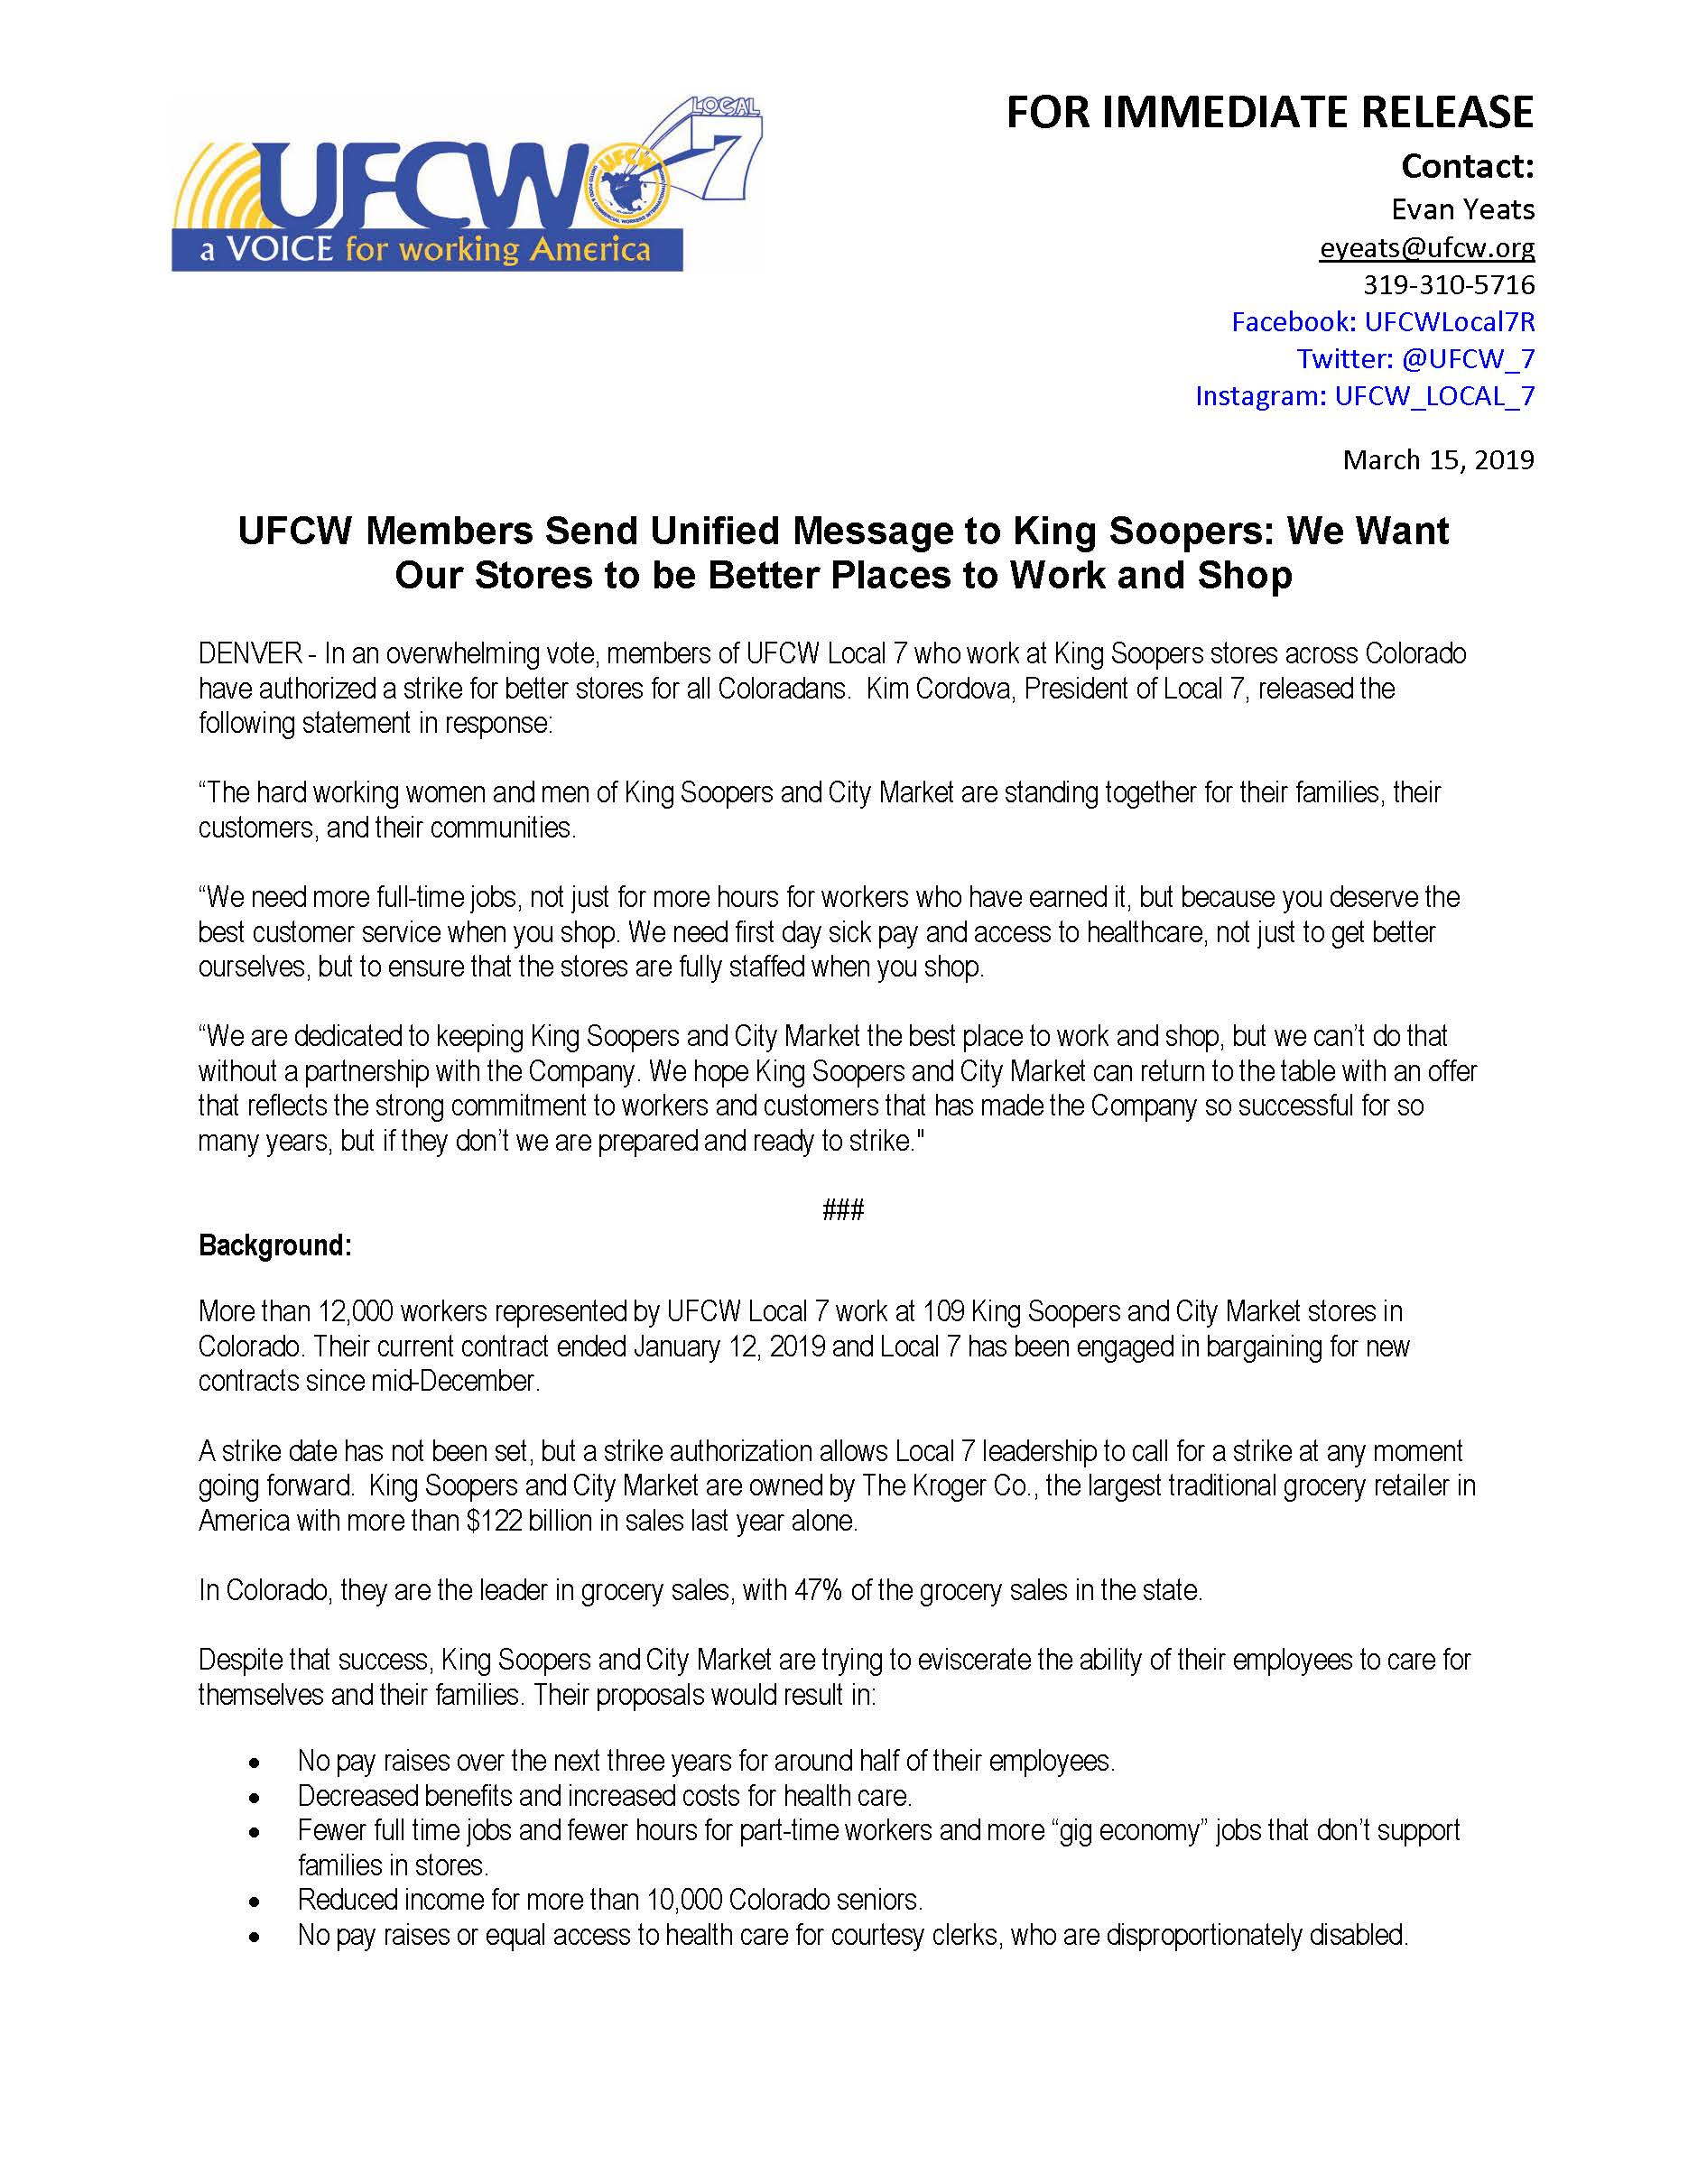 Press Release – Members Send Unified Message to King Soopers